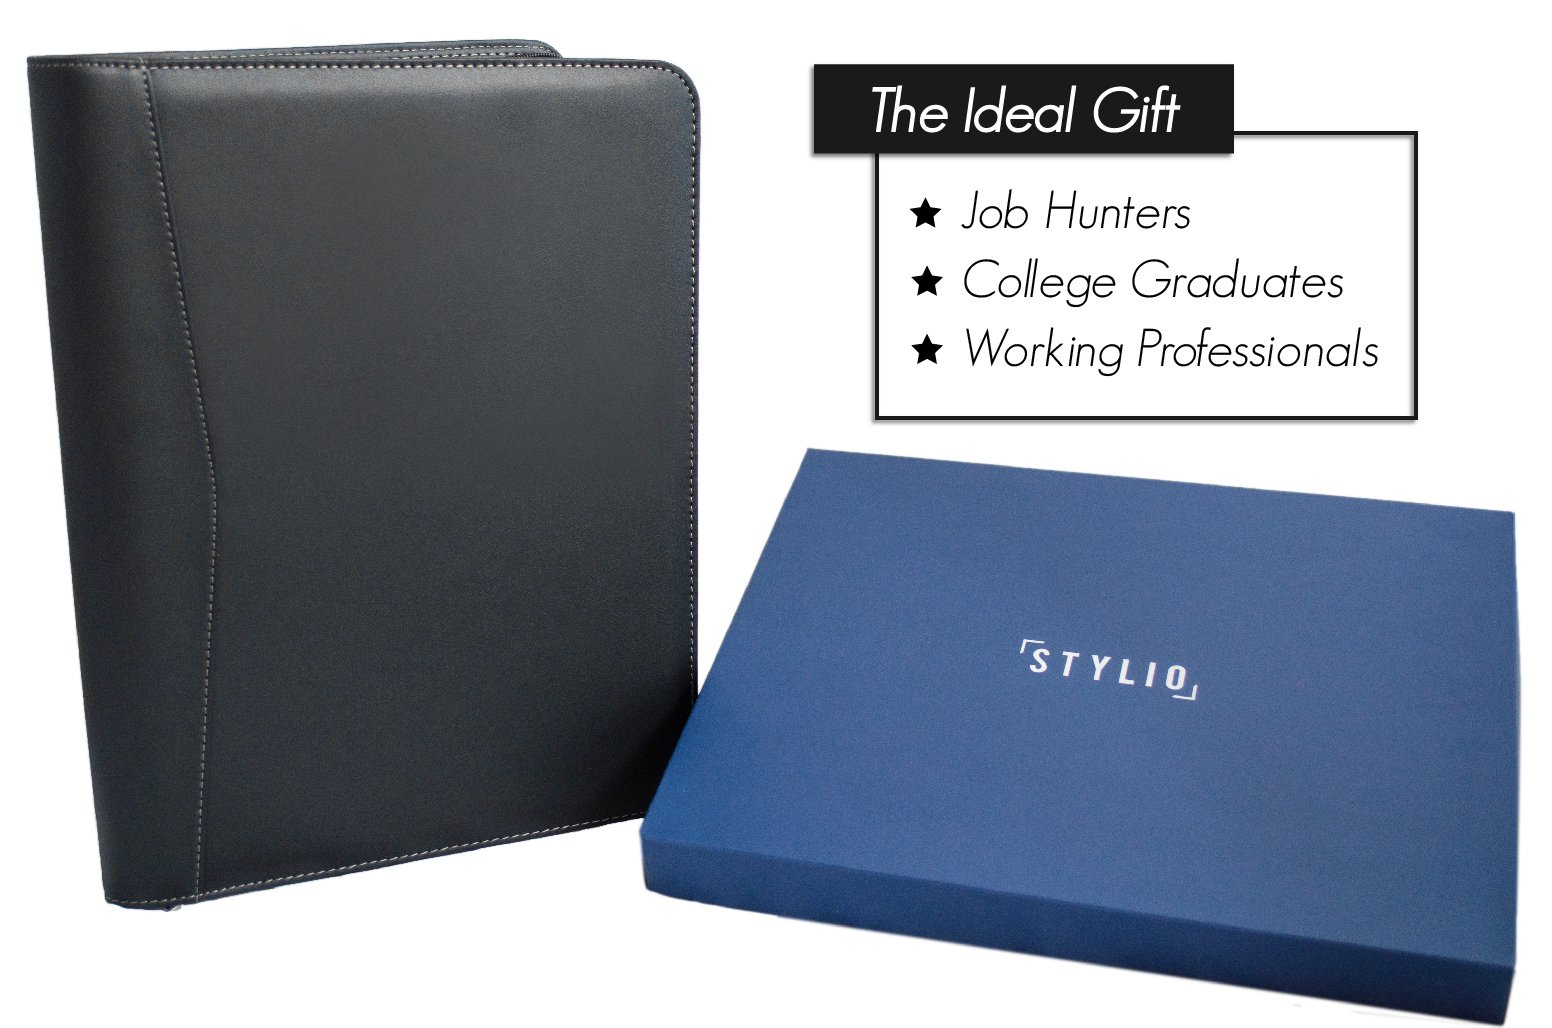 STYLIO Zippered Portfolio w Premium Pen, Padfolio Binder, Interview Resume Document Organizer. Holders for iPad/Tablet (up to 10.1''), Phone & Business Cards. Faux Leather Case. w Letter-Sized Notepad by Stylio (Image #7)